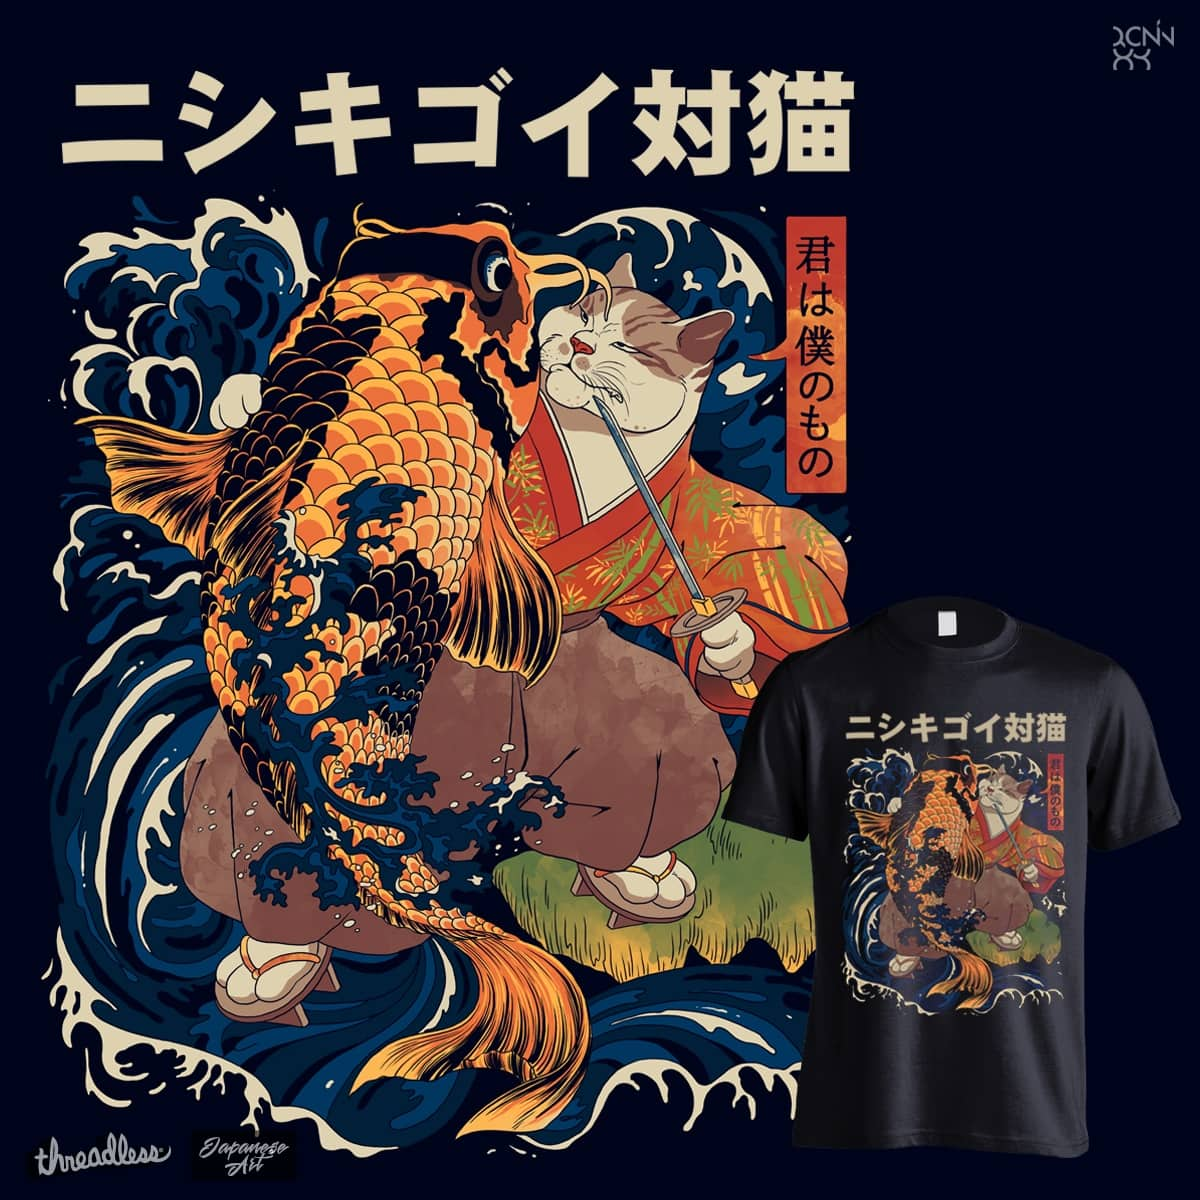 the cat and koi by ronin84 on Threadless